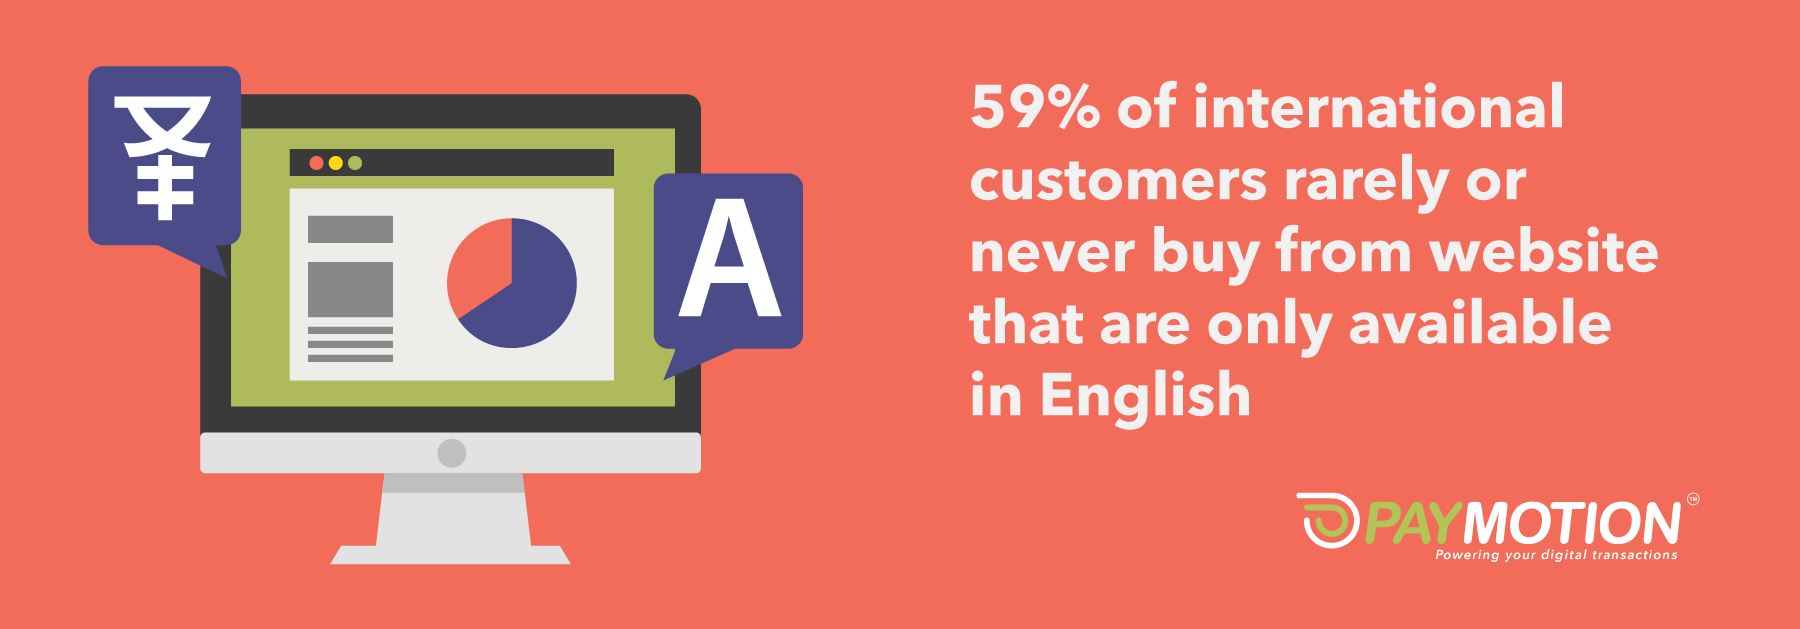 An ecommerce launch tip is to look at the fact that 59% of international customers rarely or never buy from websites only available in English